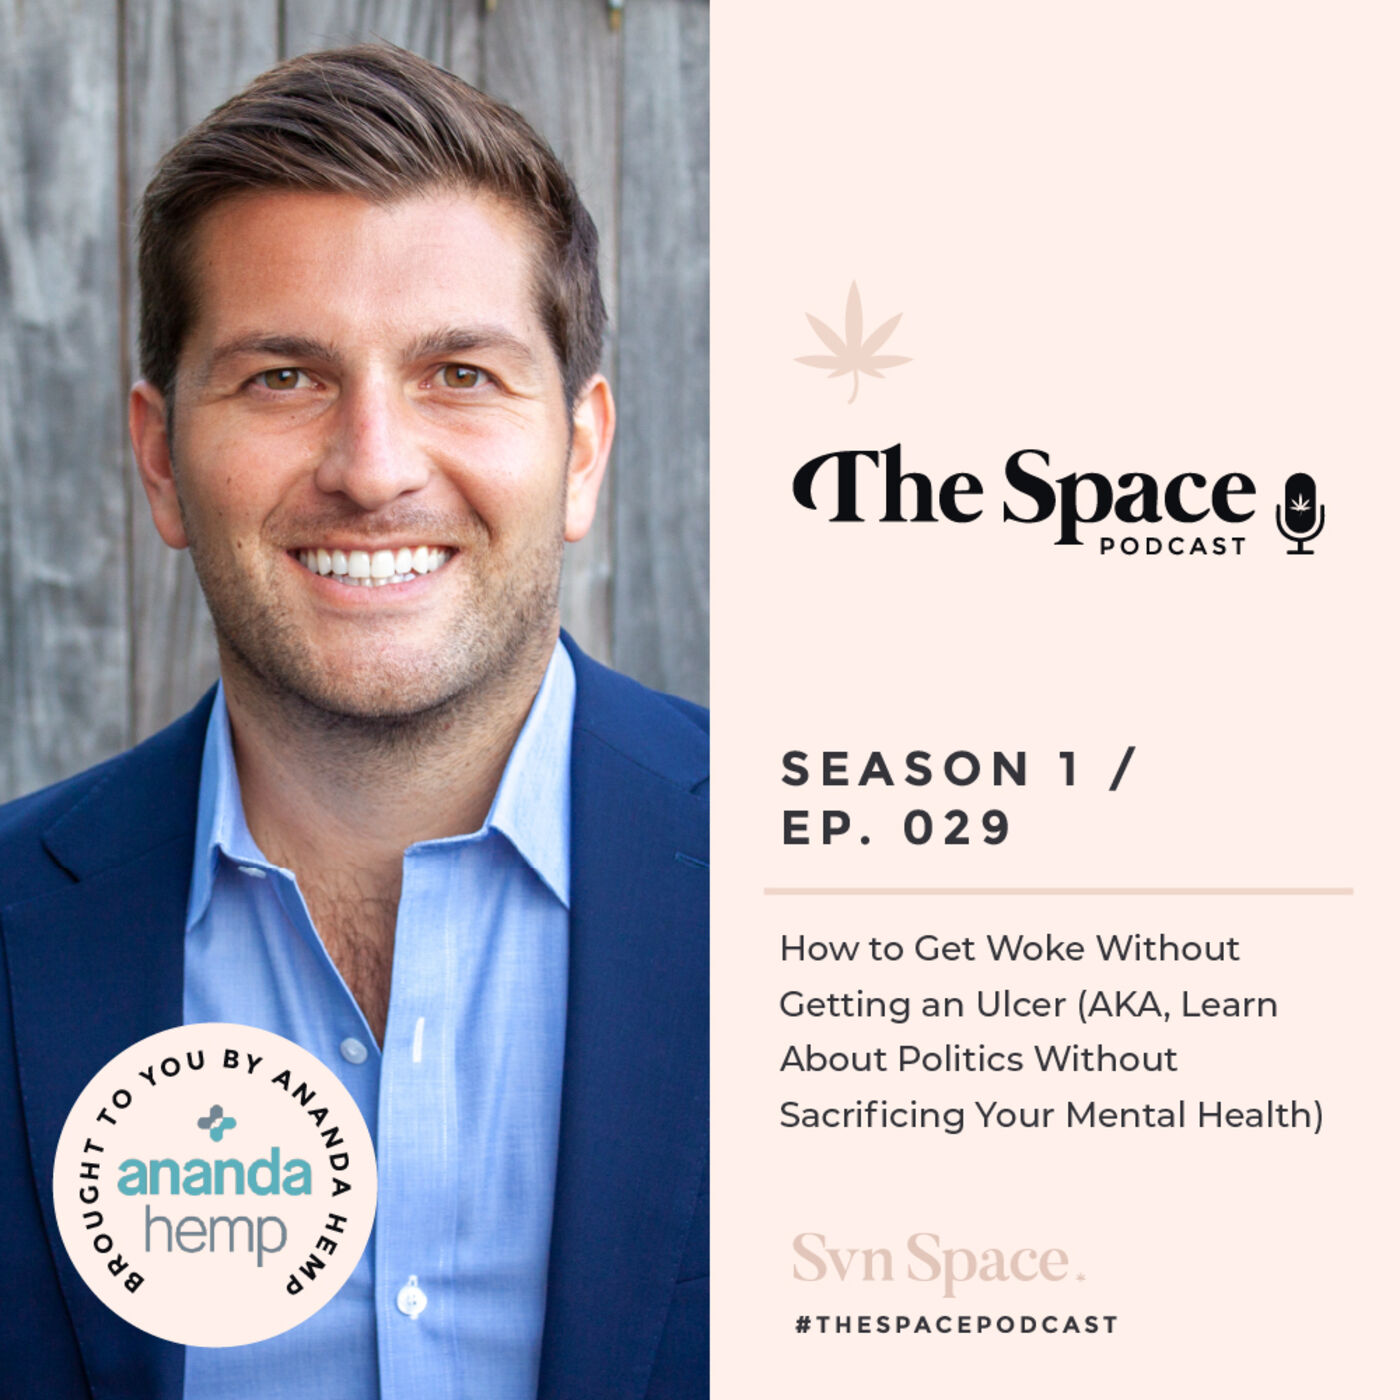 THE SPACE #029: How to Get Woke Without Getting an Ulcer (AKA, Learn About Politics Without Sacrificing Your Mental Health)